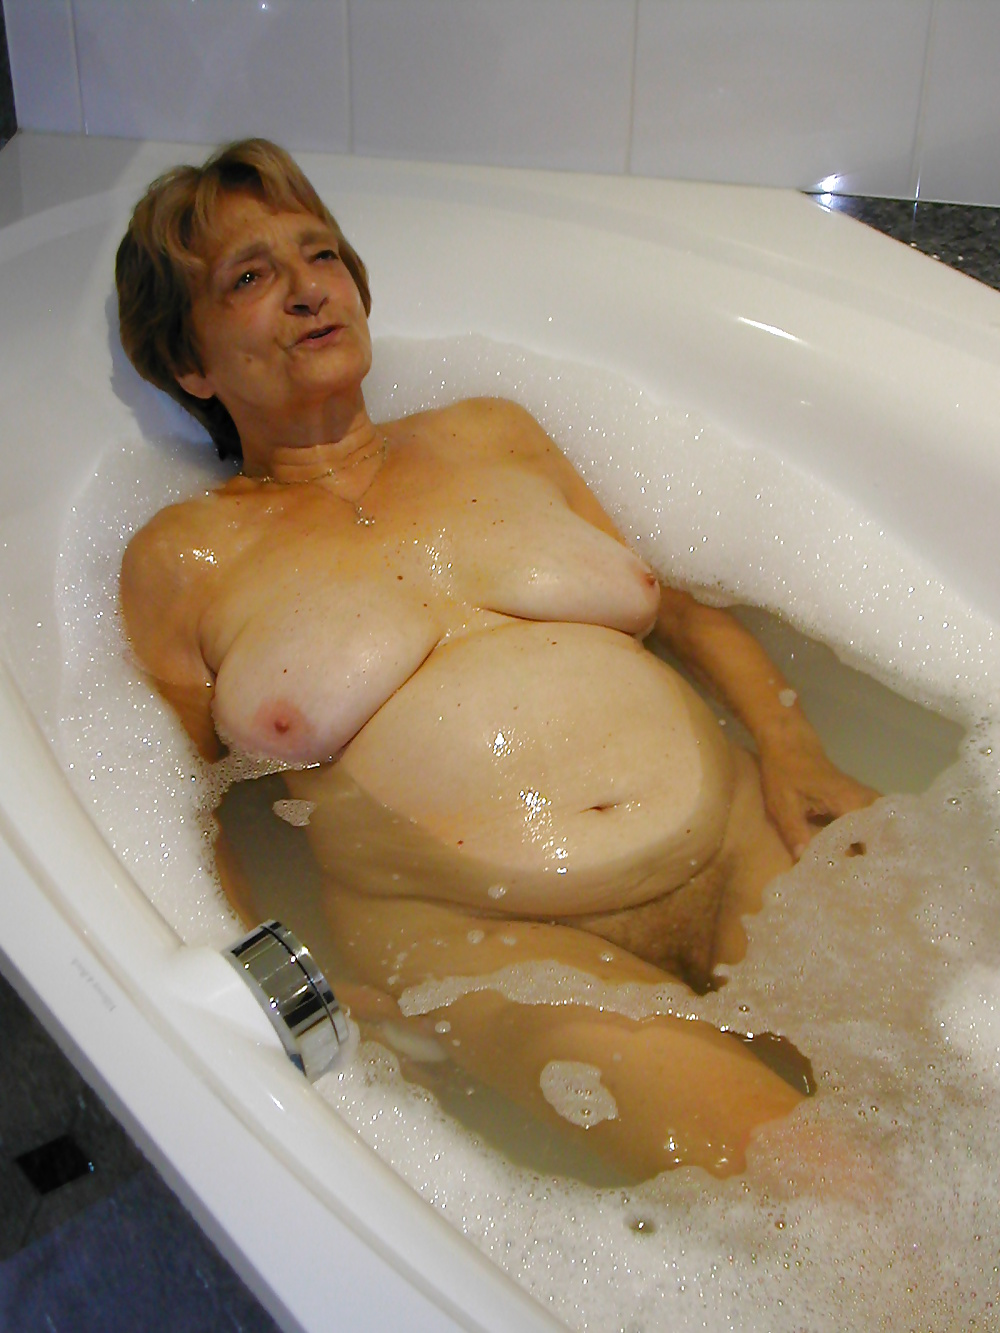 old-naked-people-in-hot-tubs-girlvacuum-sex